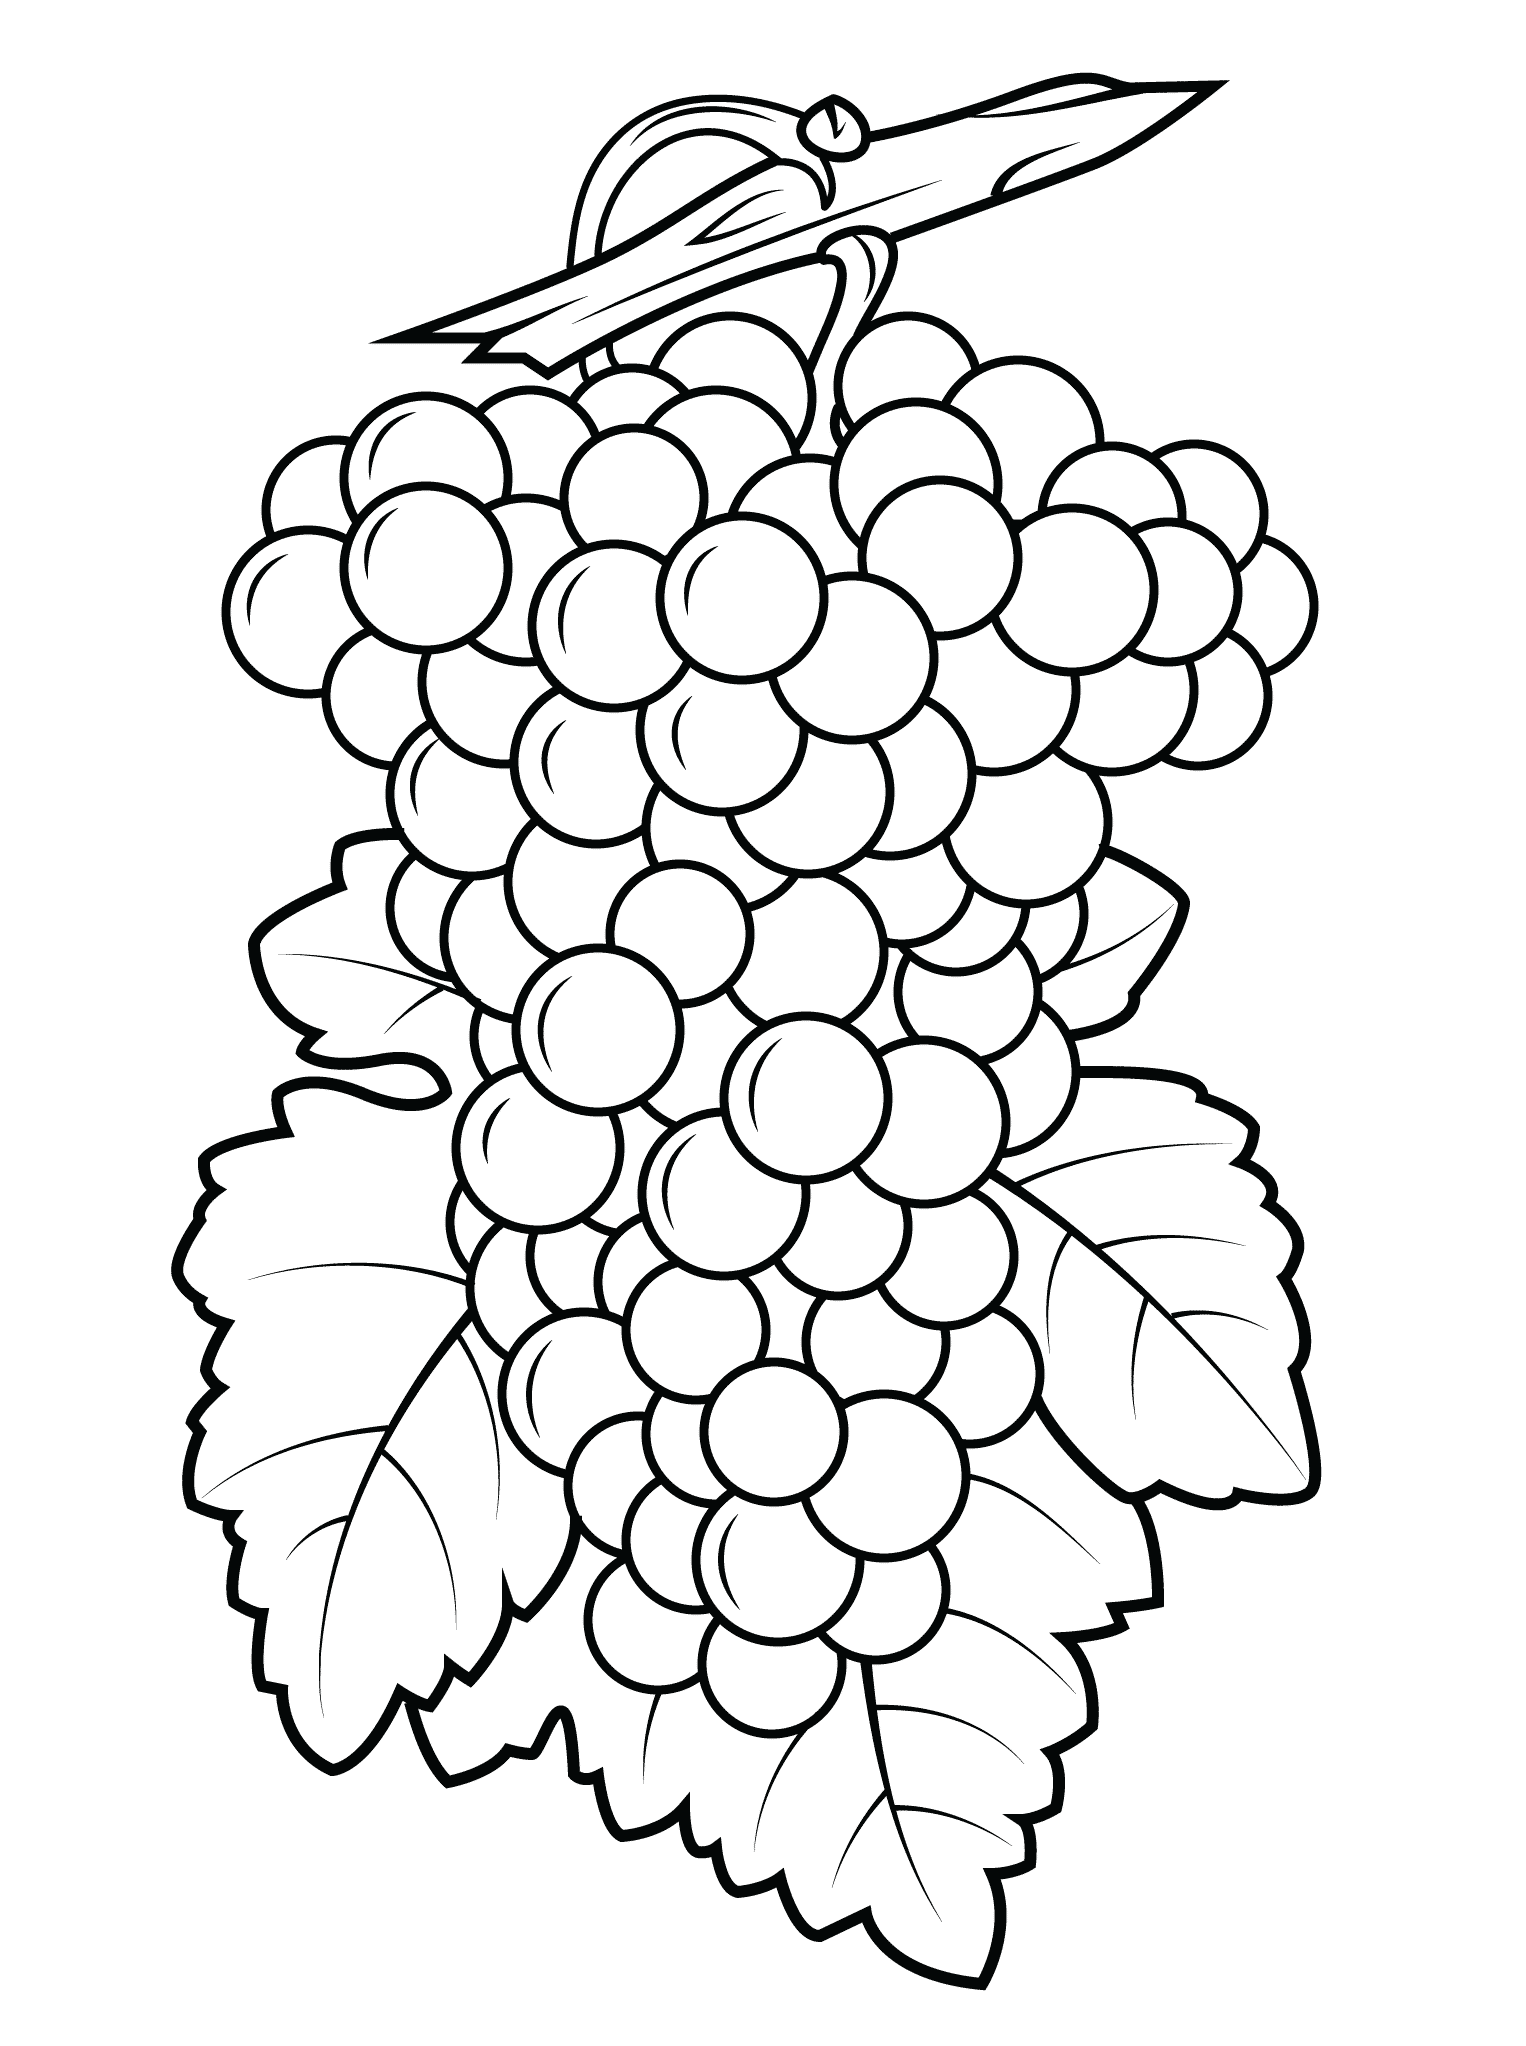 Grapes Coloring Pages Best Coloring